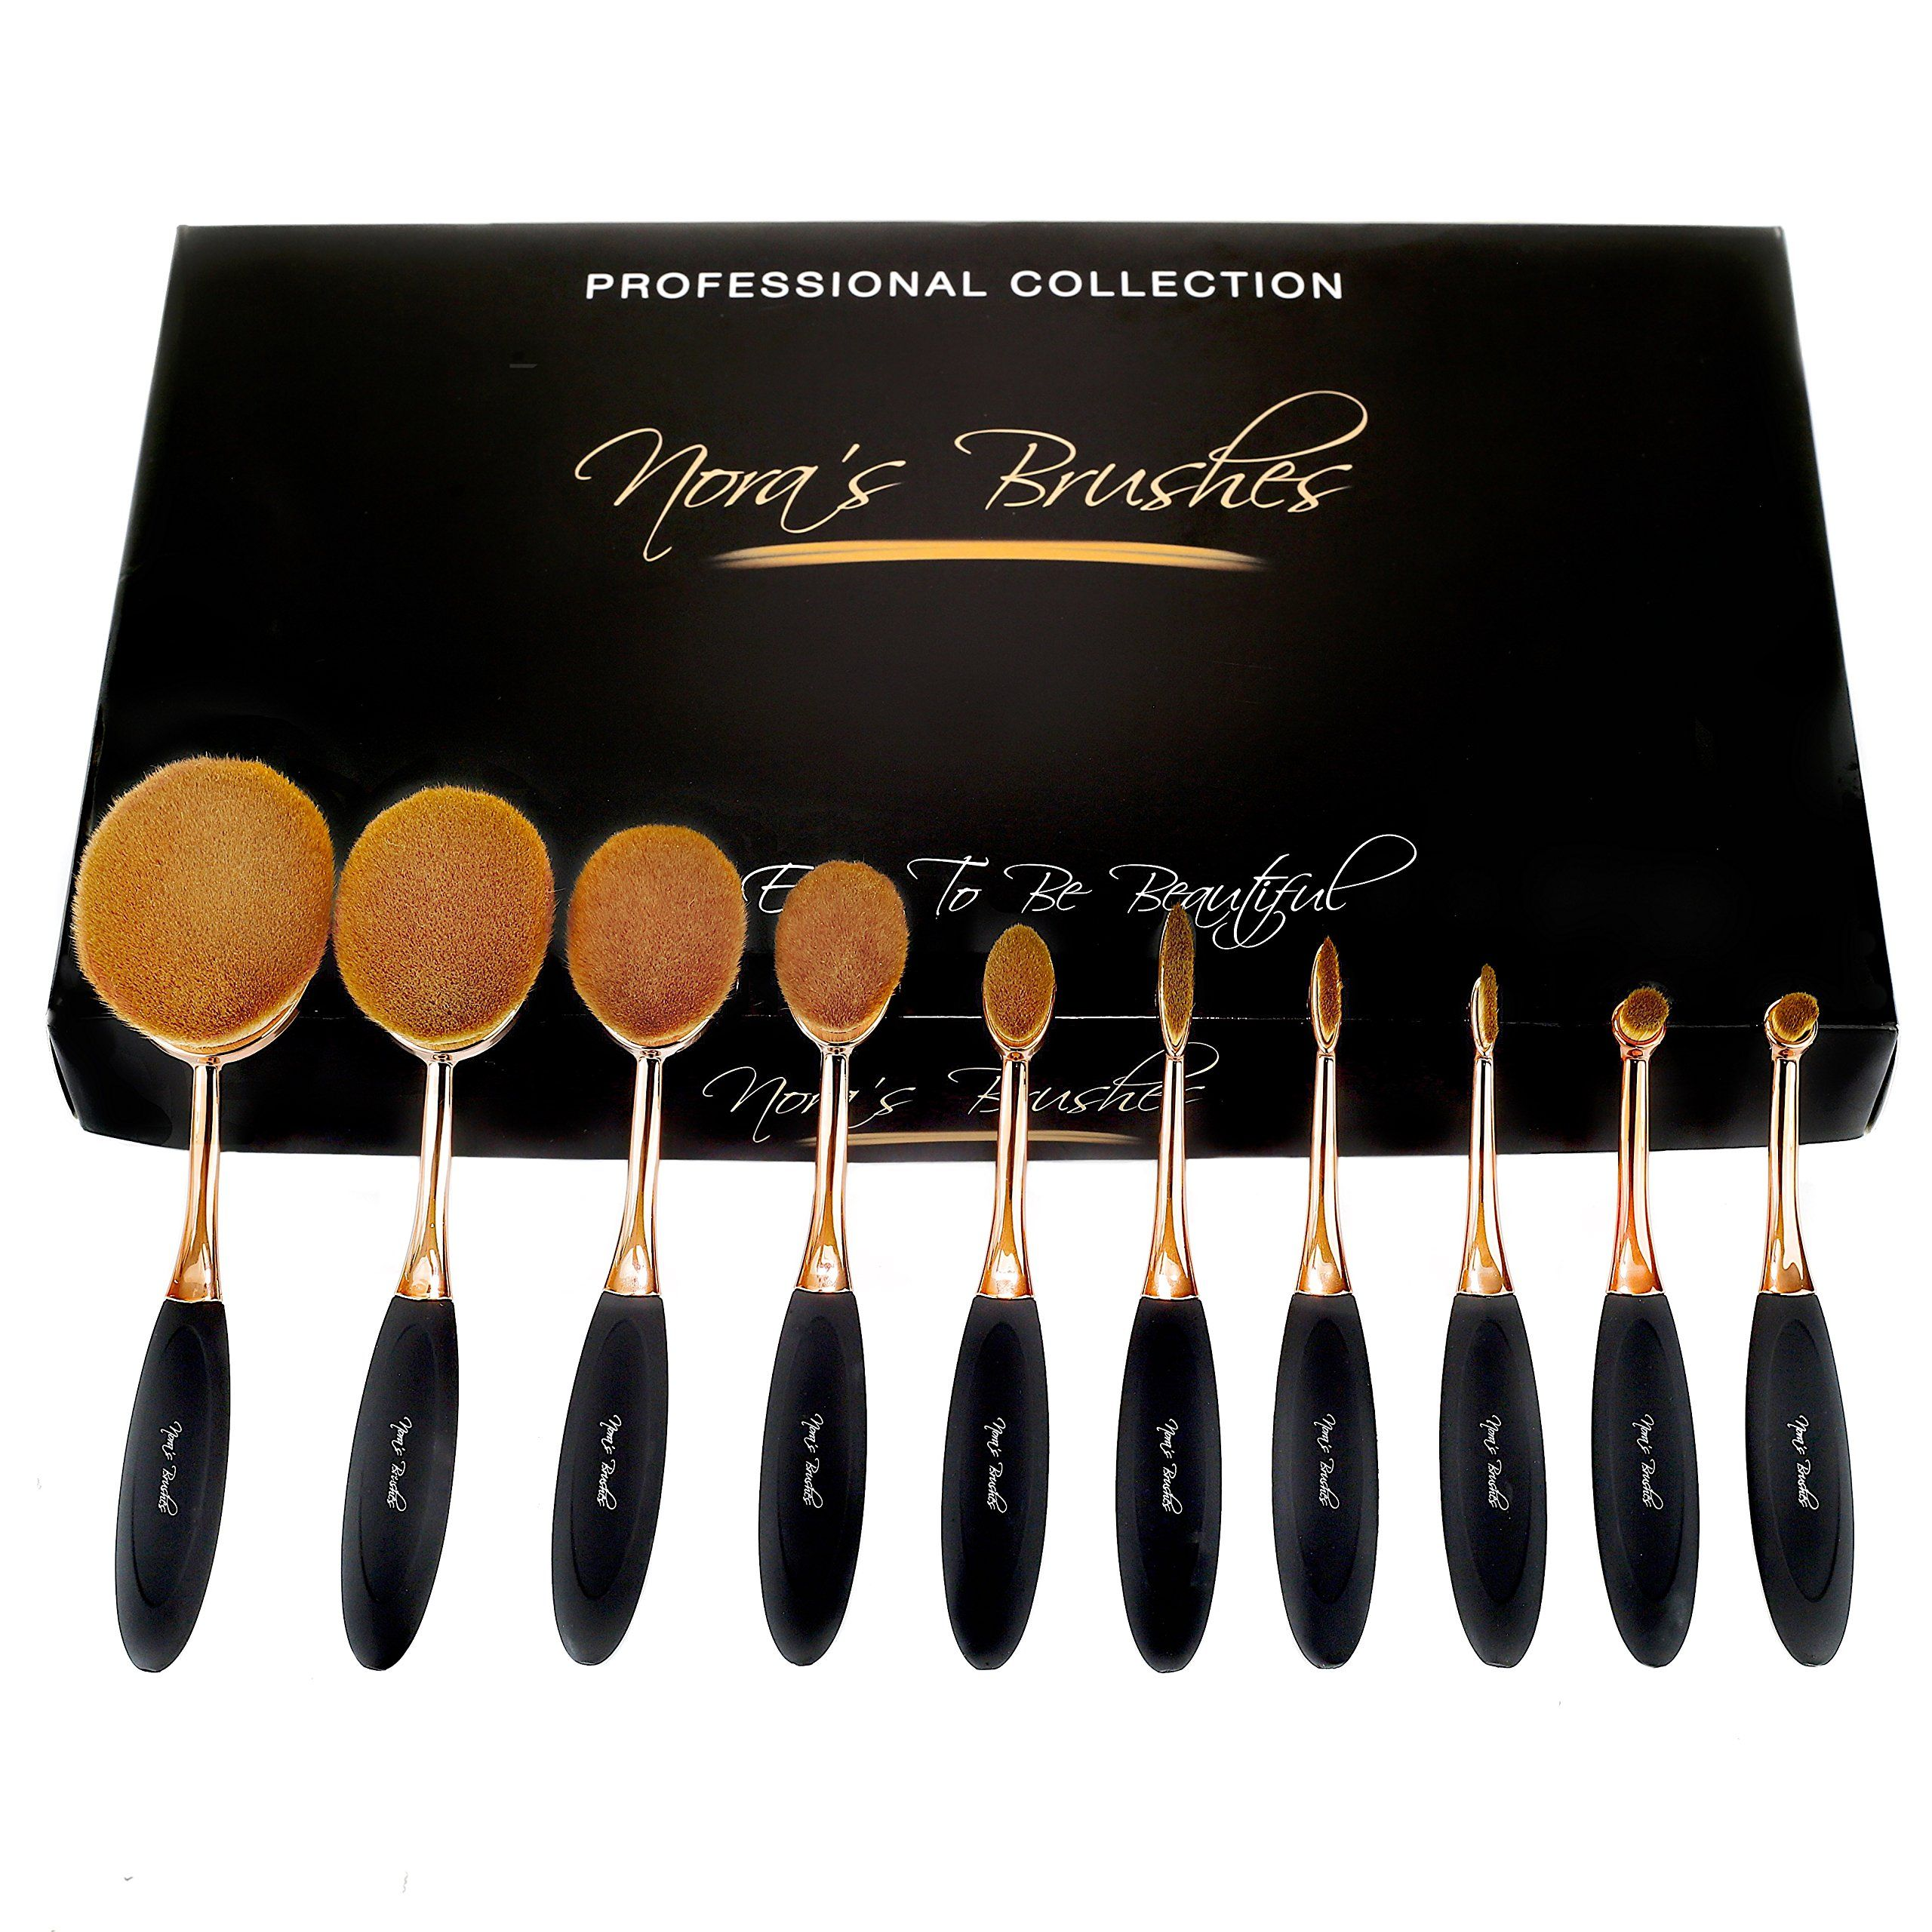 Nora's Brushes Oval Toothbrush Makeup Sets (Pack of 10